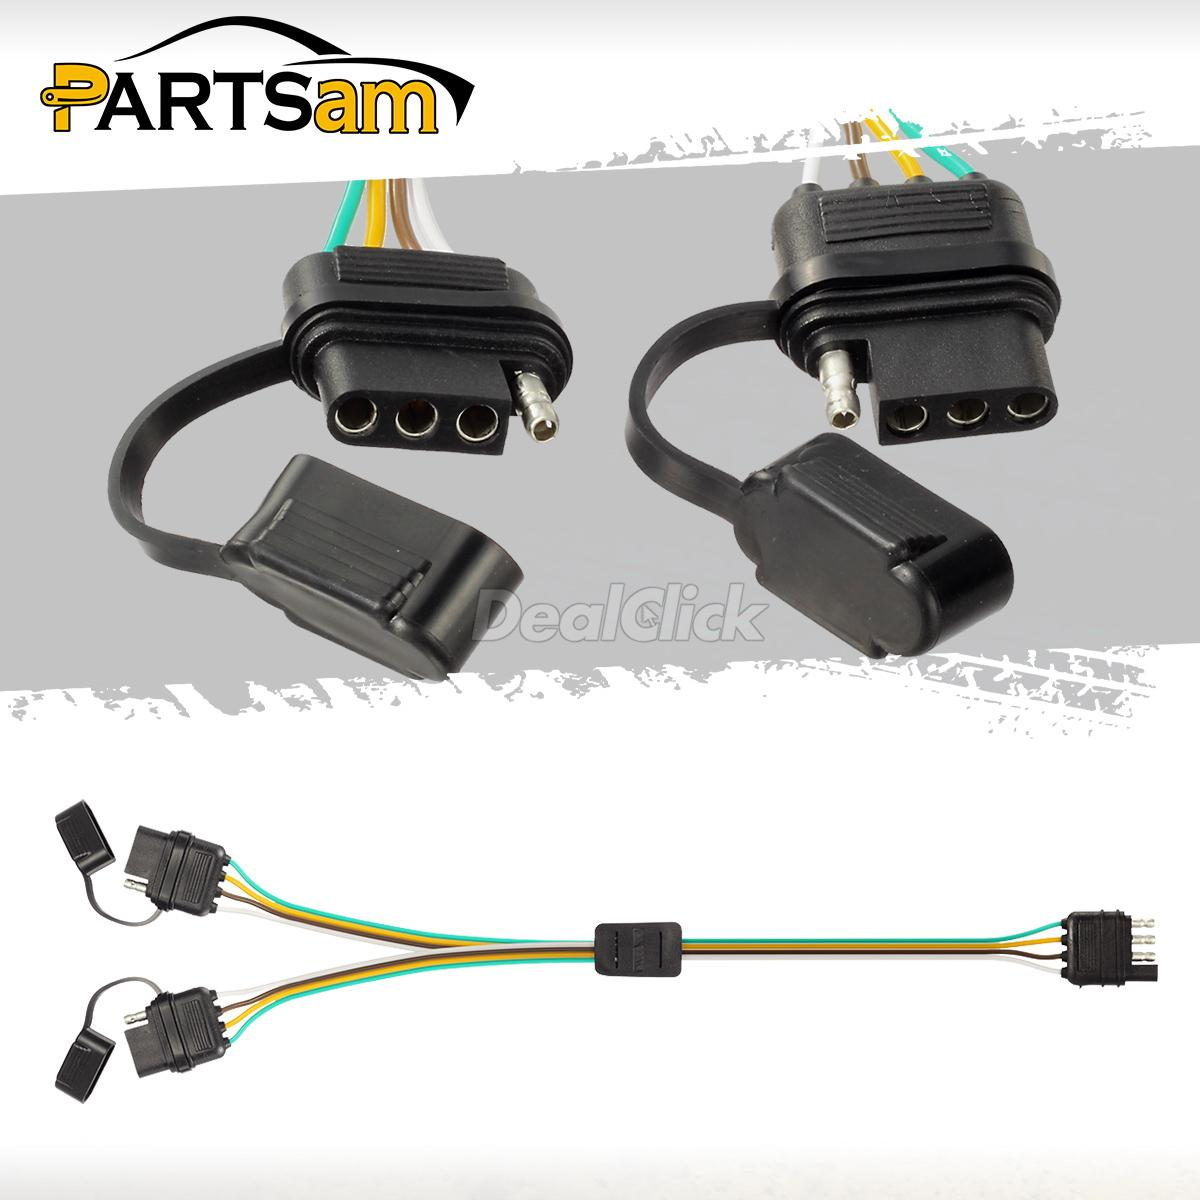 hight resolution of details about trailer splitter 2 way 4 pin y split wiring harness adapter for led tailgate bar